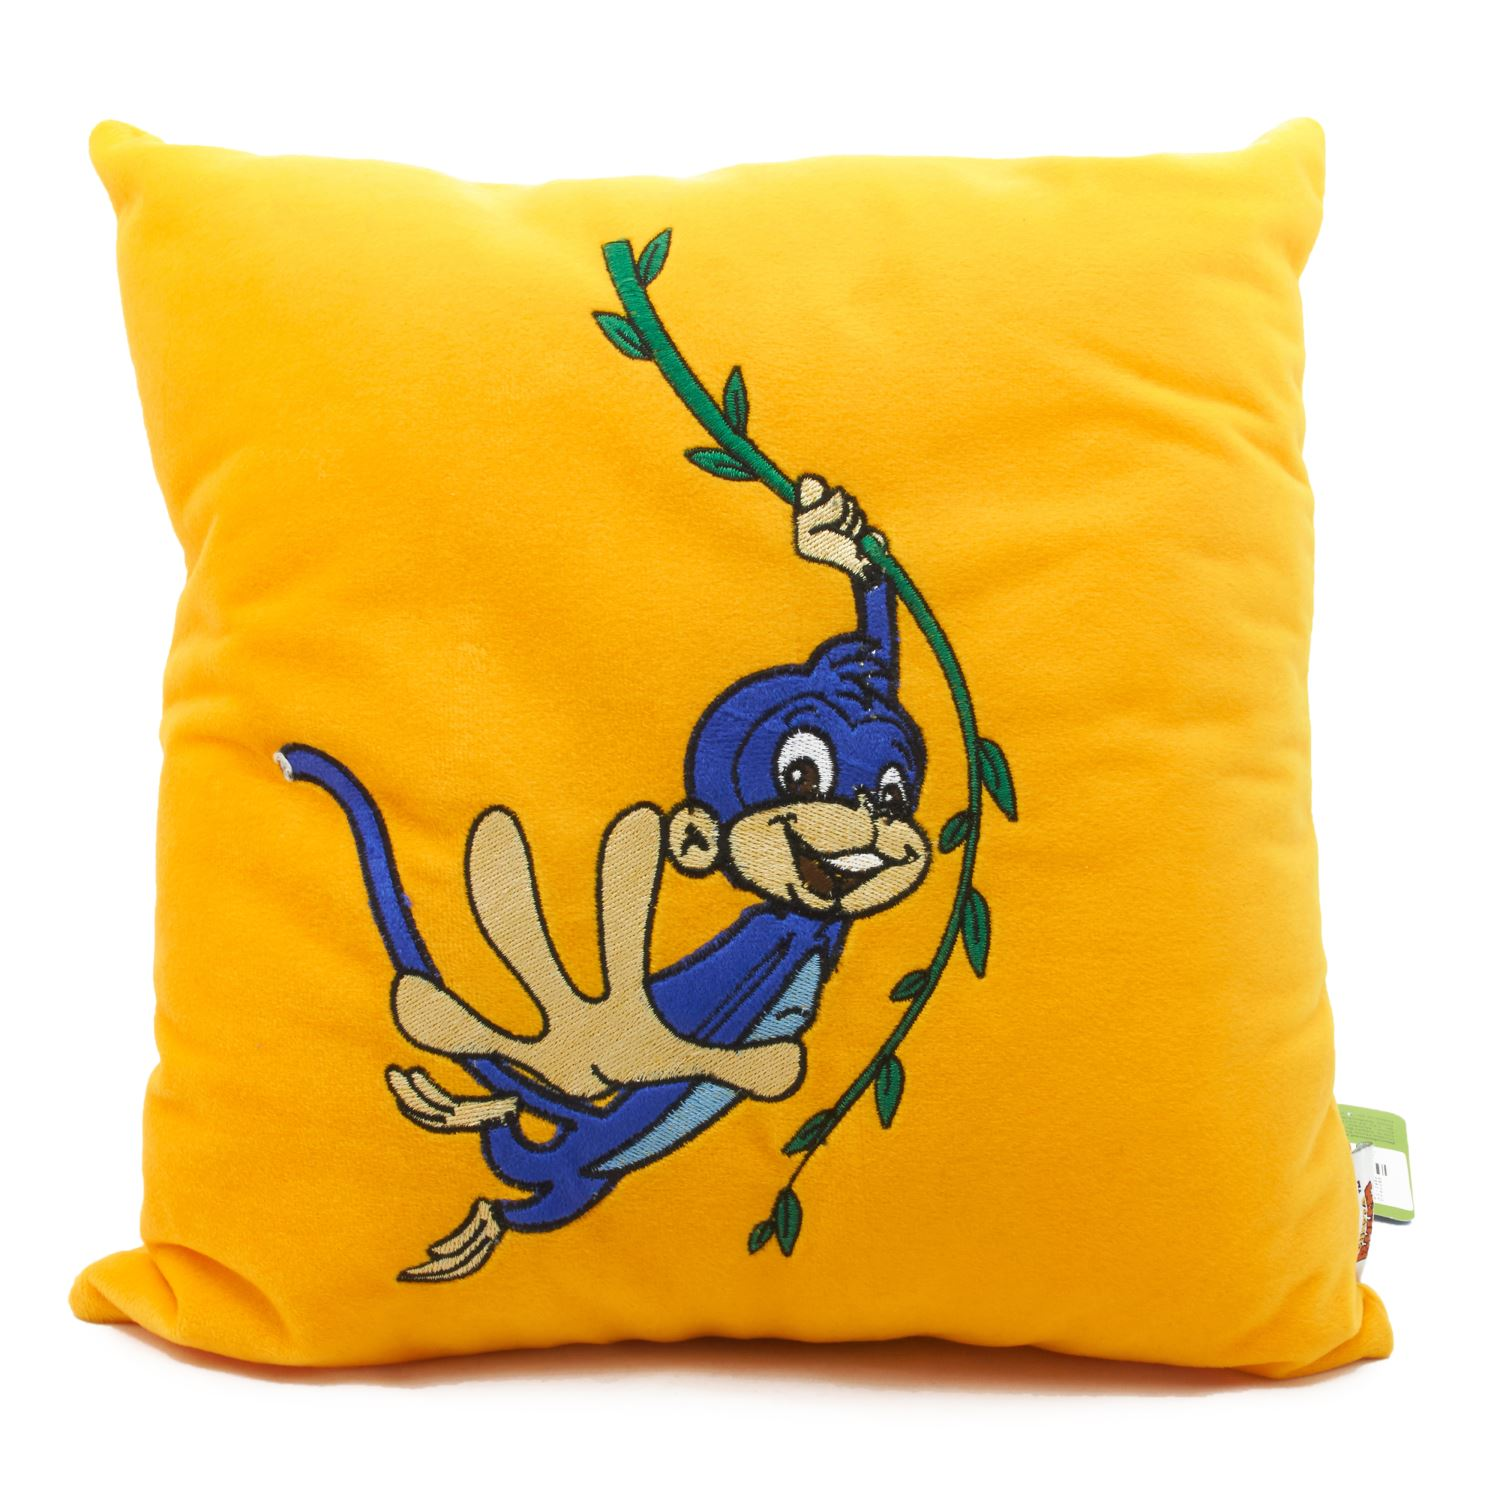 Vividha 448 Stuffed Cushion Cb-Jungle 36X36 Cms Marigold